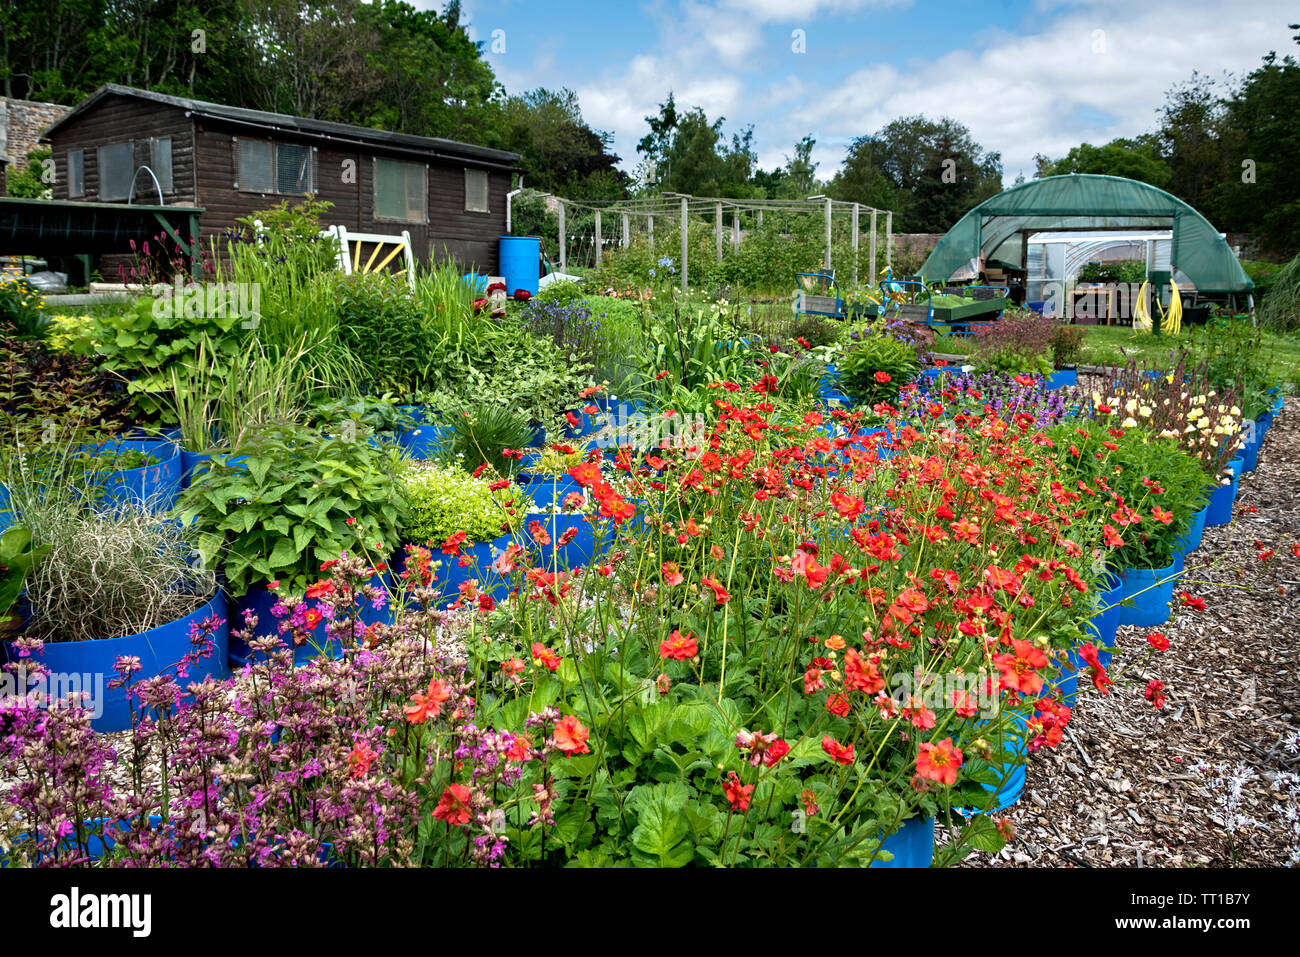 A variety of flowers growing in containers in part of SAMH(Scottish Association for Mental Health)  Redhall Walled Garden, Edinburgh, Scotland, UK. - Stock Image